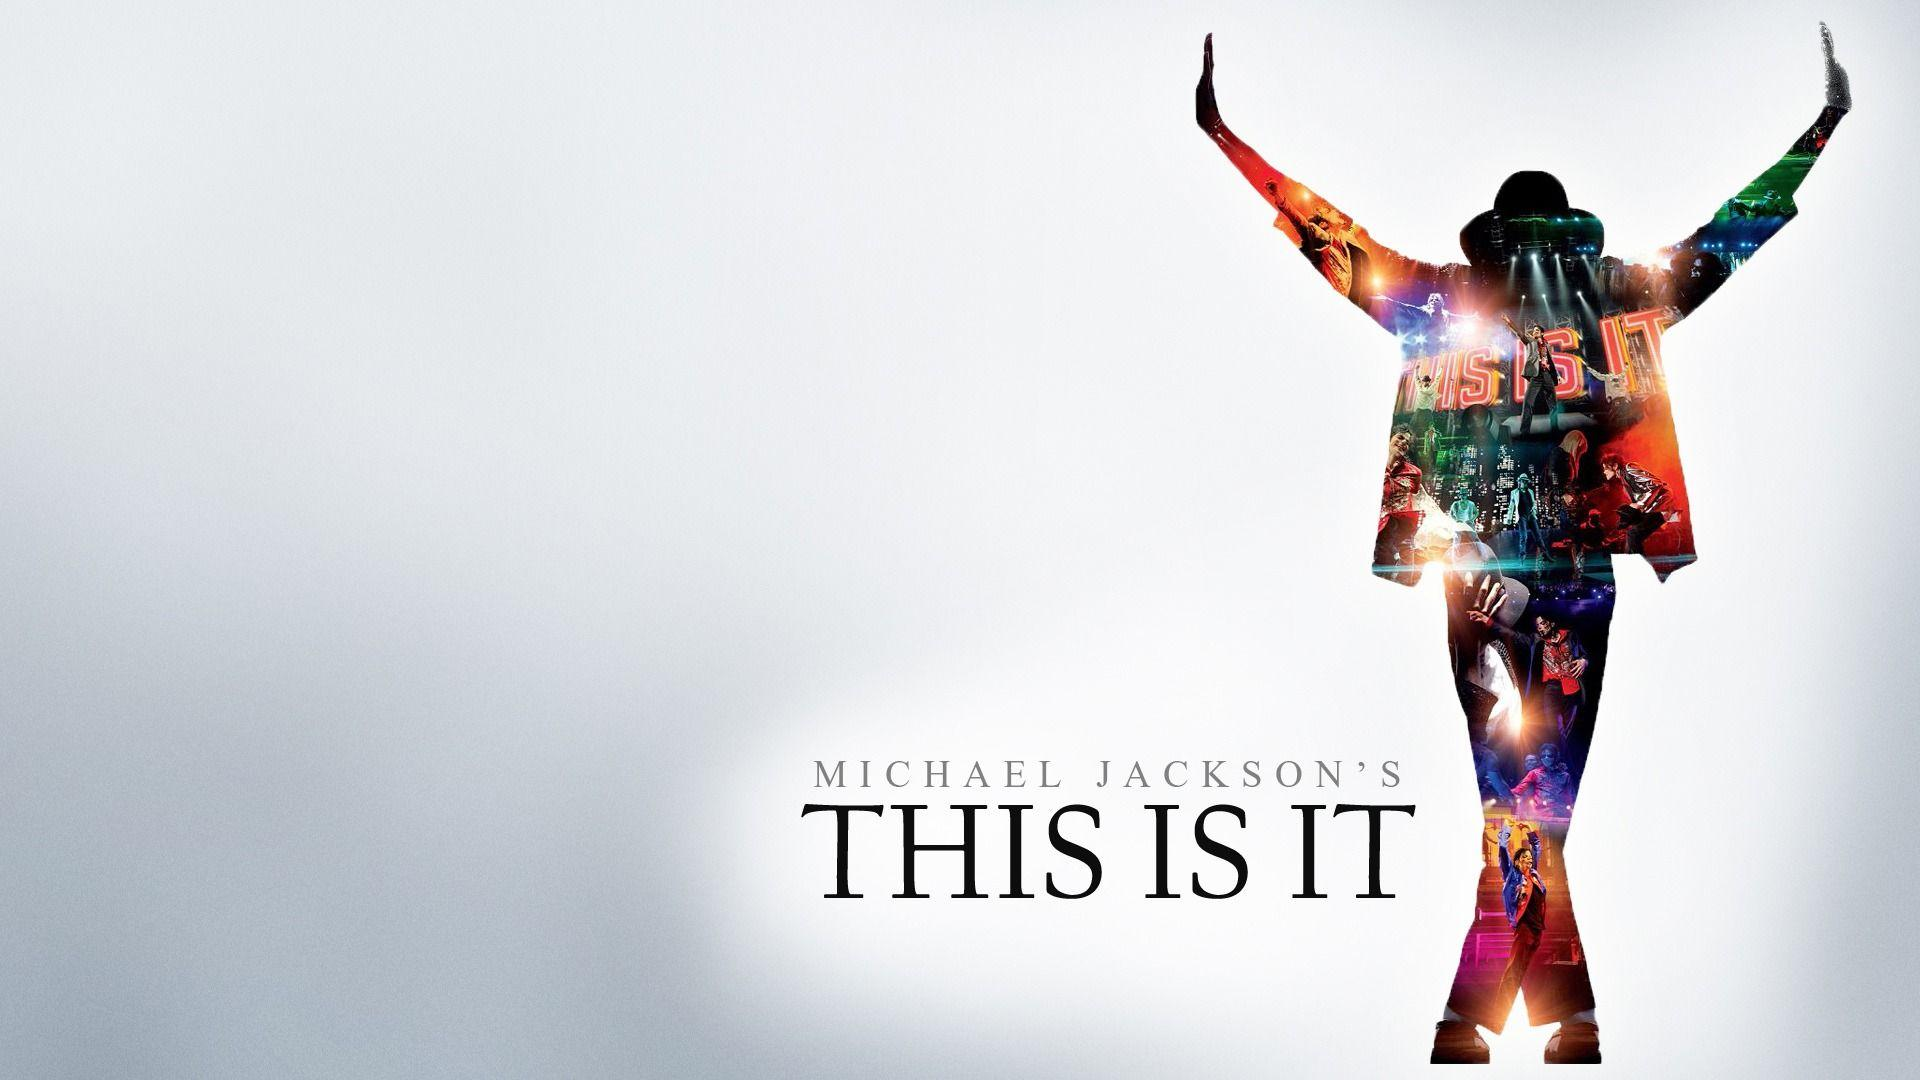 Michael Jackson This Is It Album wallpaper - 487858